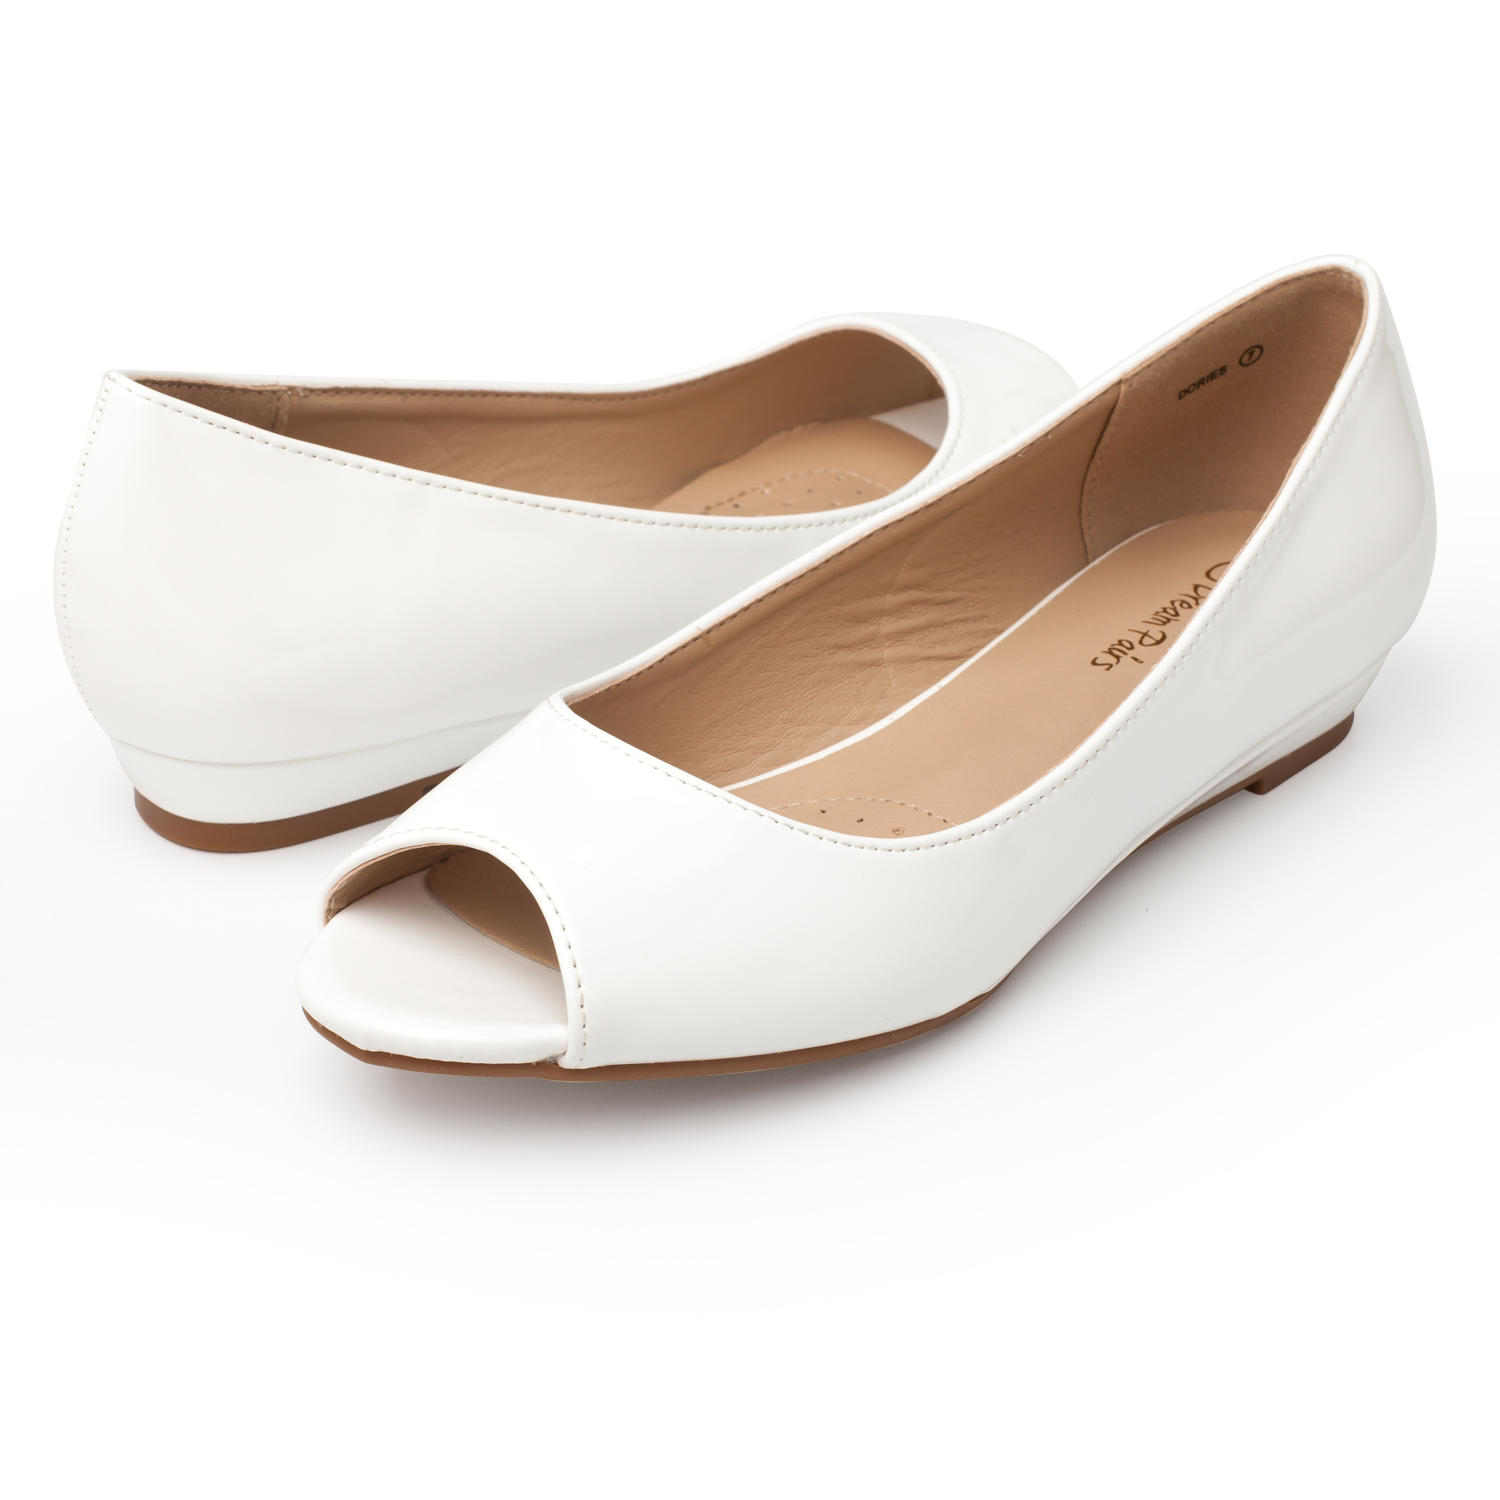 DREAM-PAIRS-Womens-Ballet-Flats-Low-Heel-Open-Toe-Slip-On-Dress-Flat-Shoes thumbnail 23